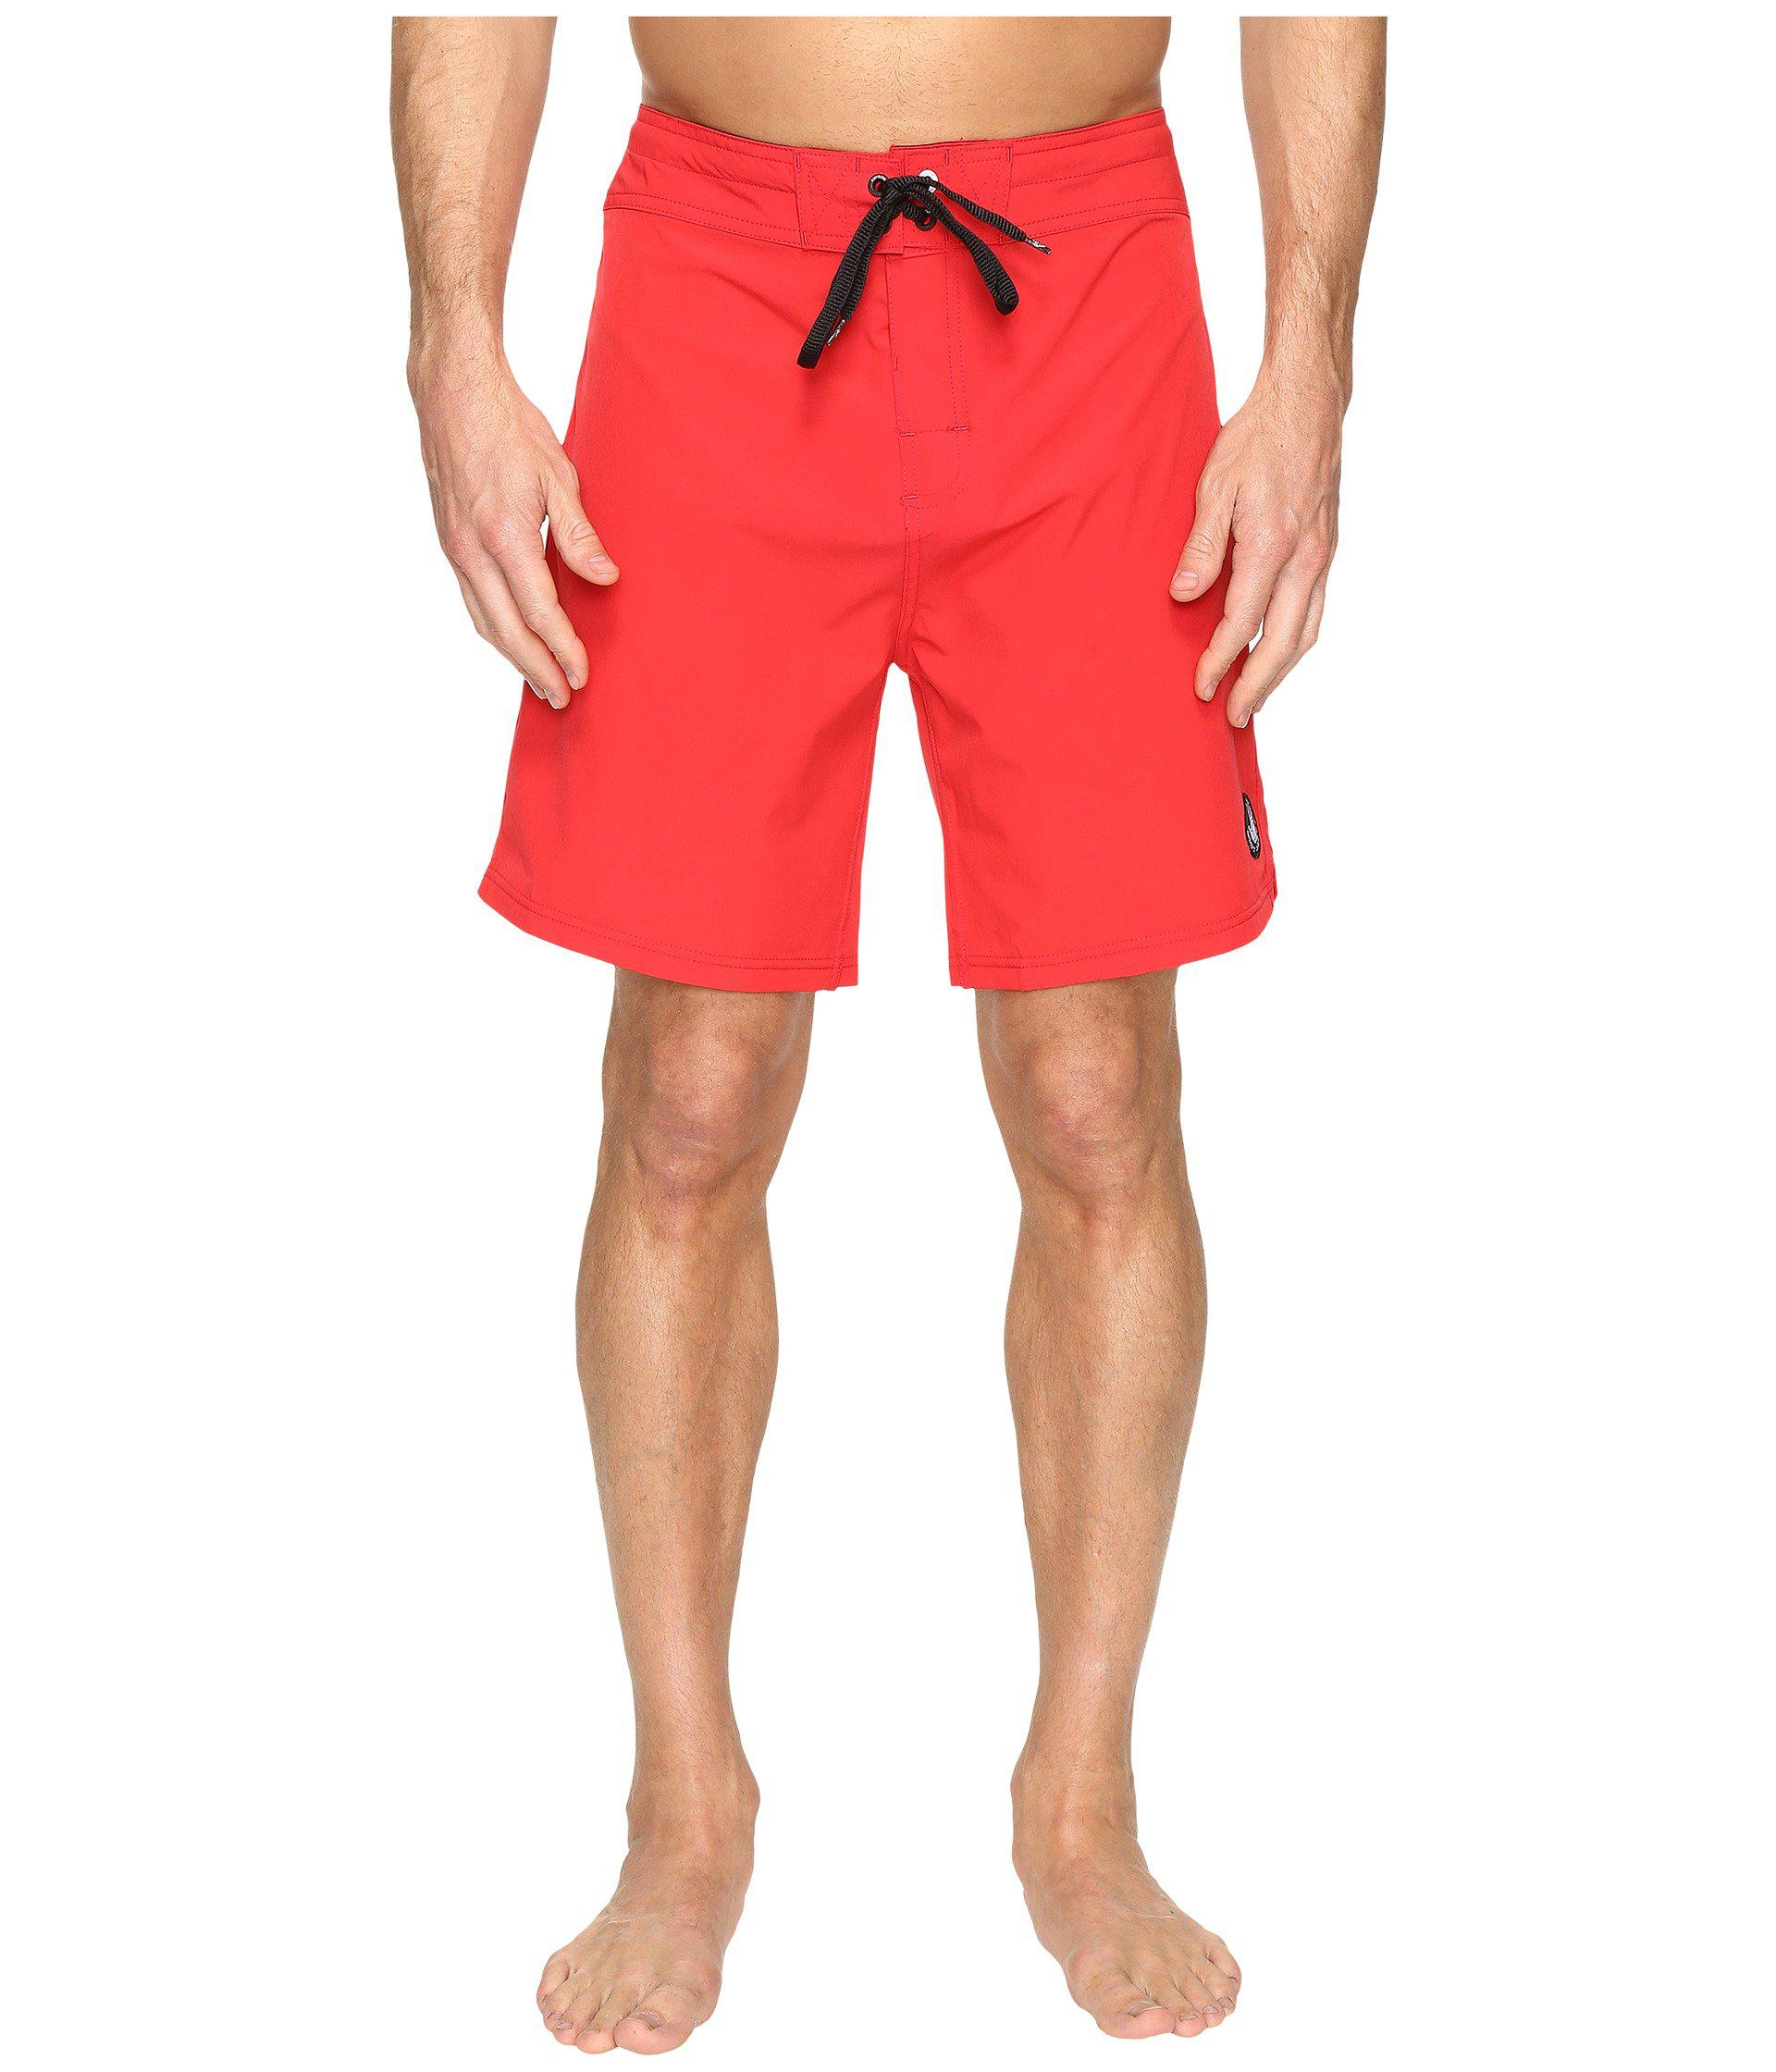 b6893614d037e Lyst - Body Glove Vapor Twin Spin Boardshorts in Red for Men - Save 27%